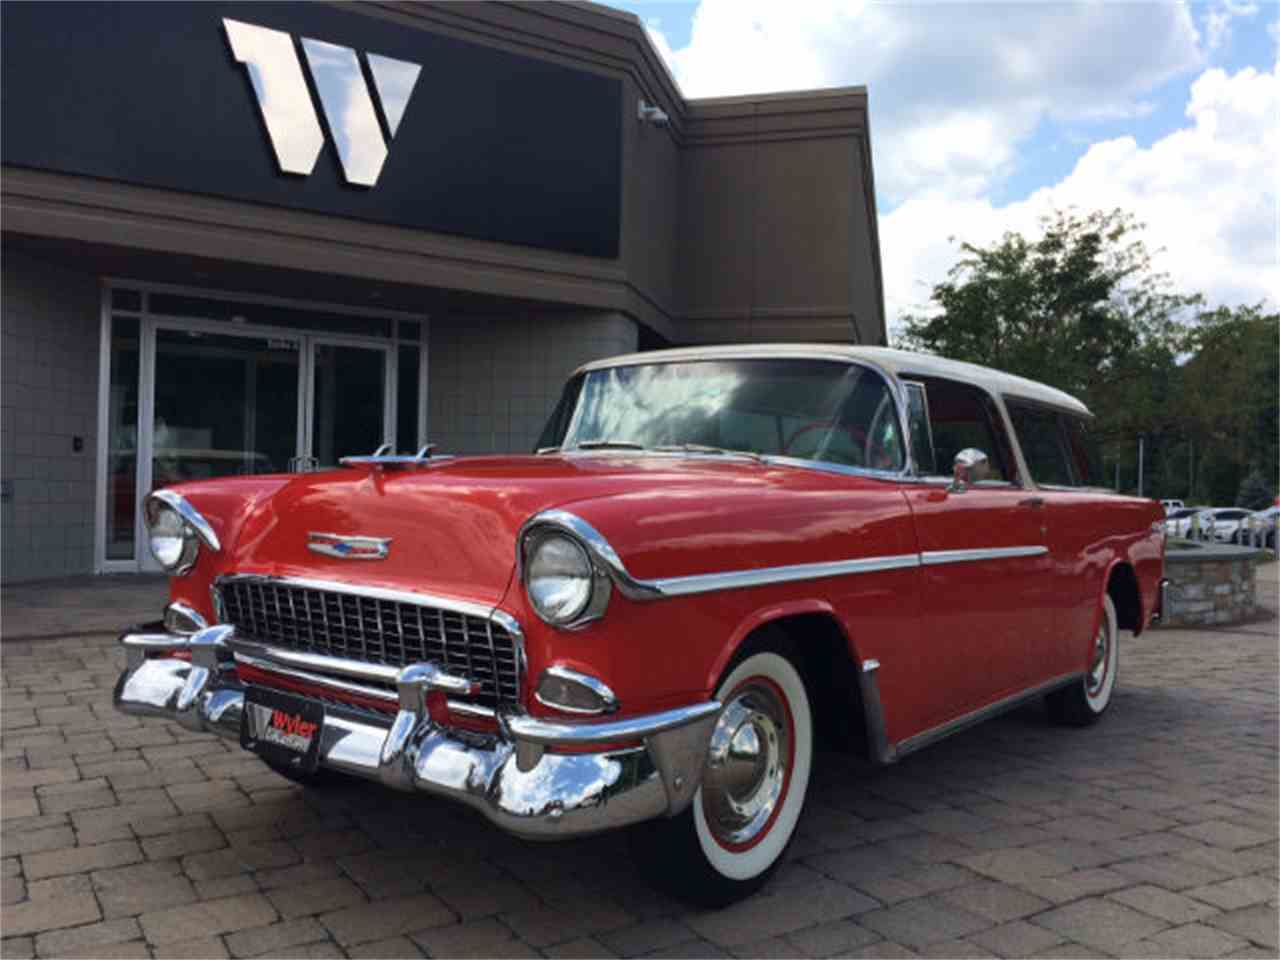 1955 Chevrolet Nomad for Sale on ClassicCars.com